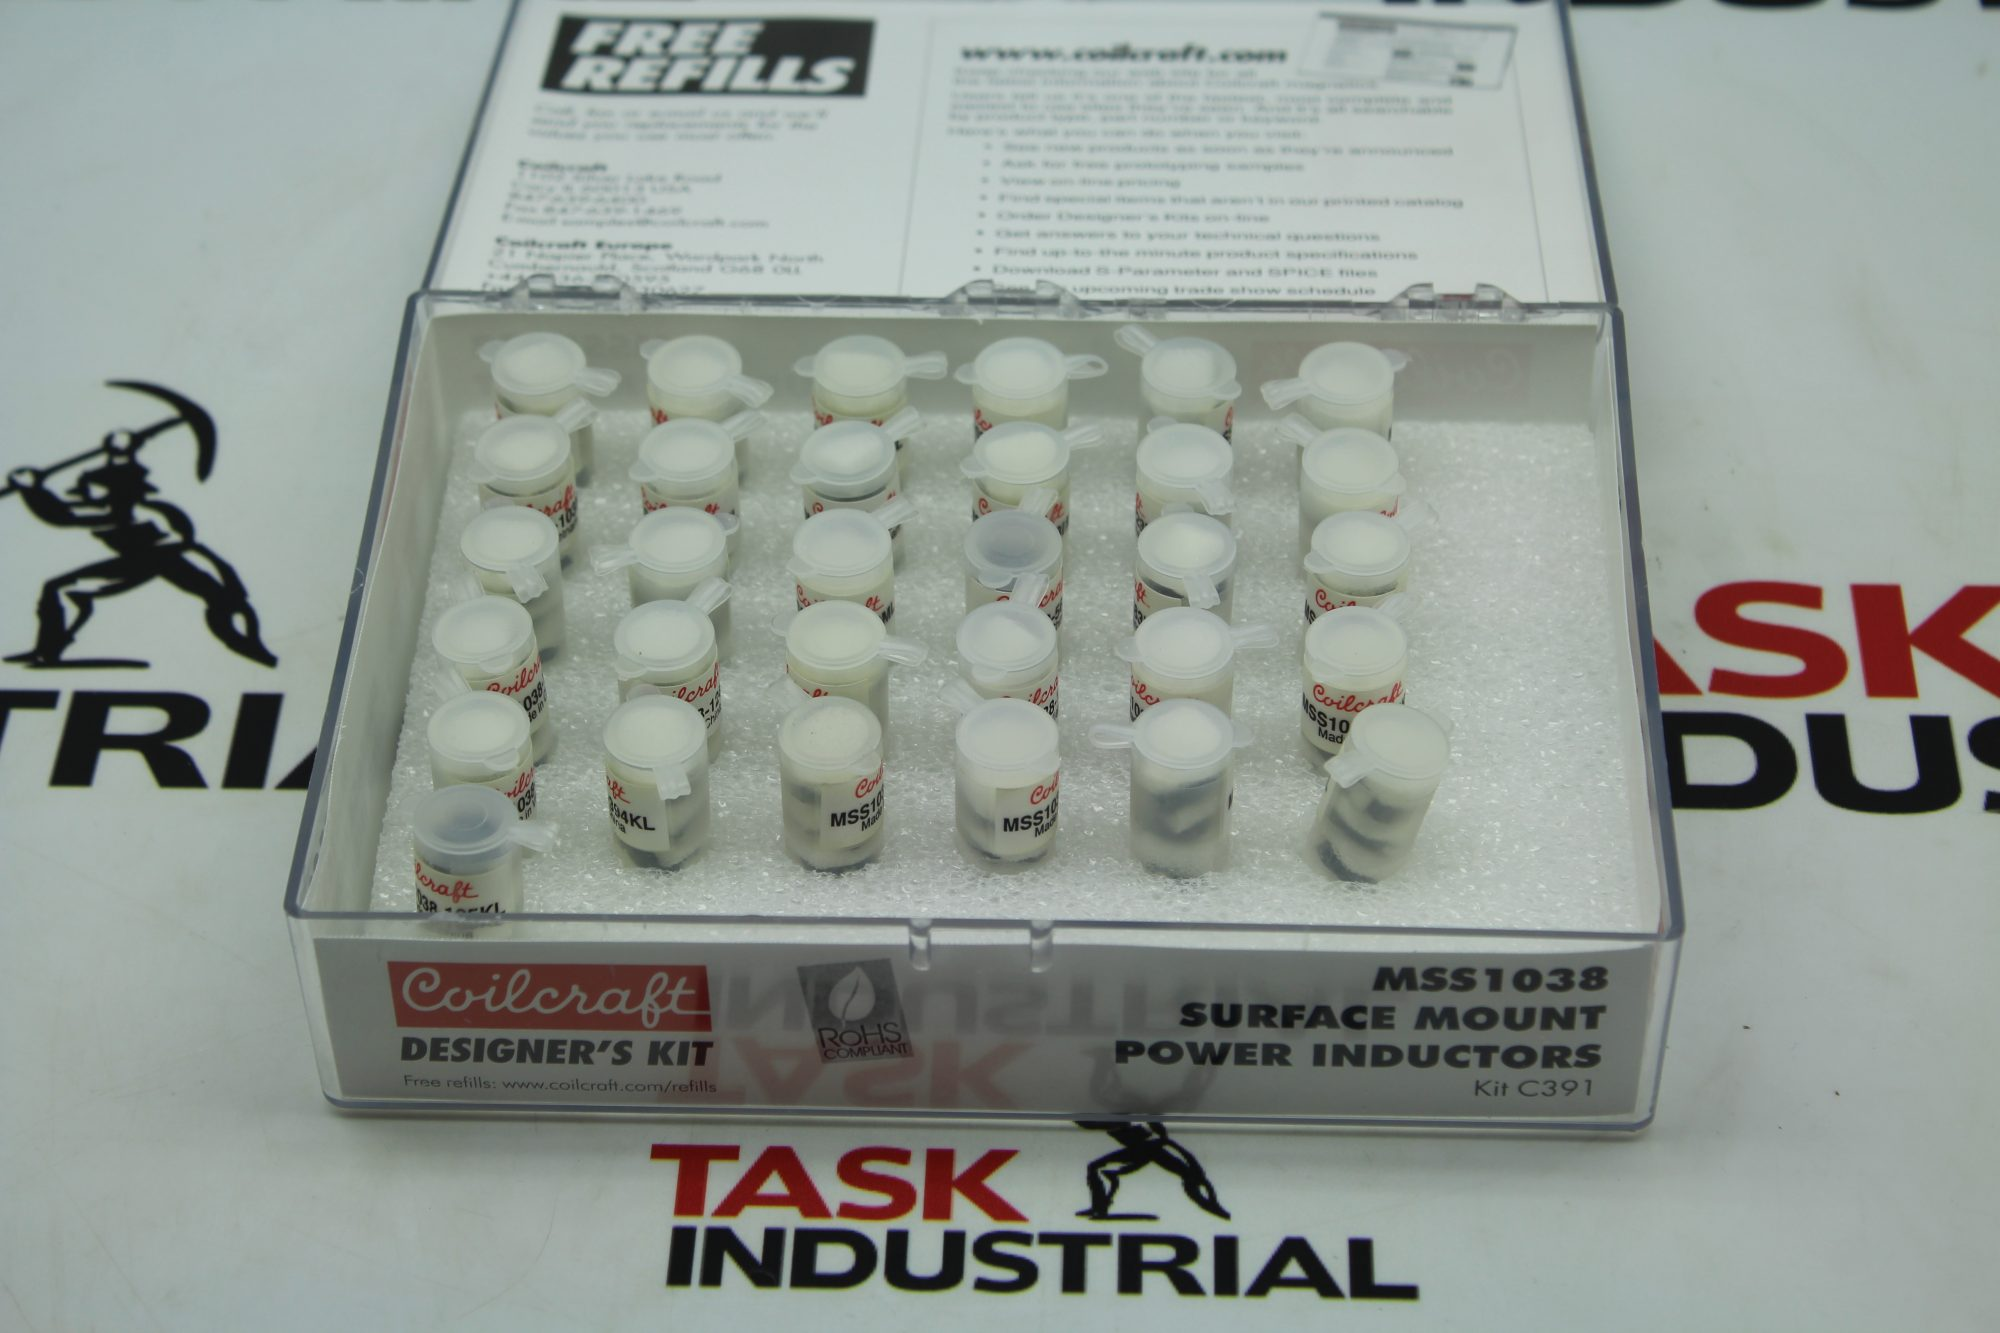 Coilcraft MSS1038 Surface Mount Power Inductors KIT C391